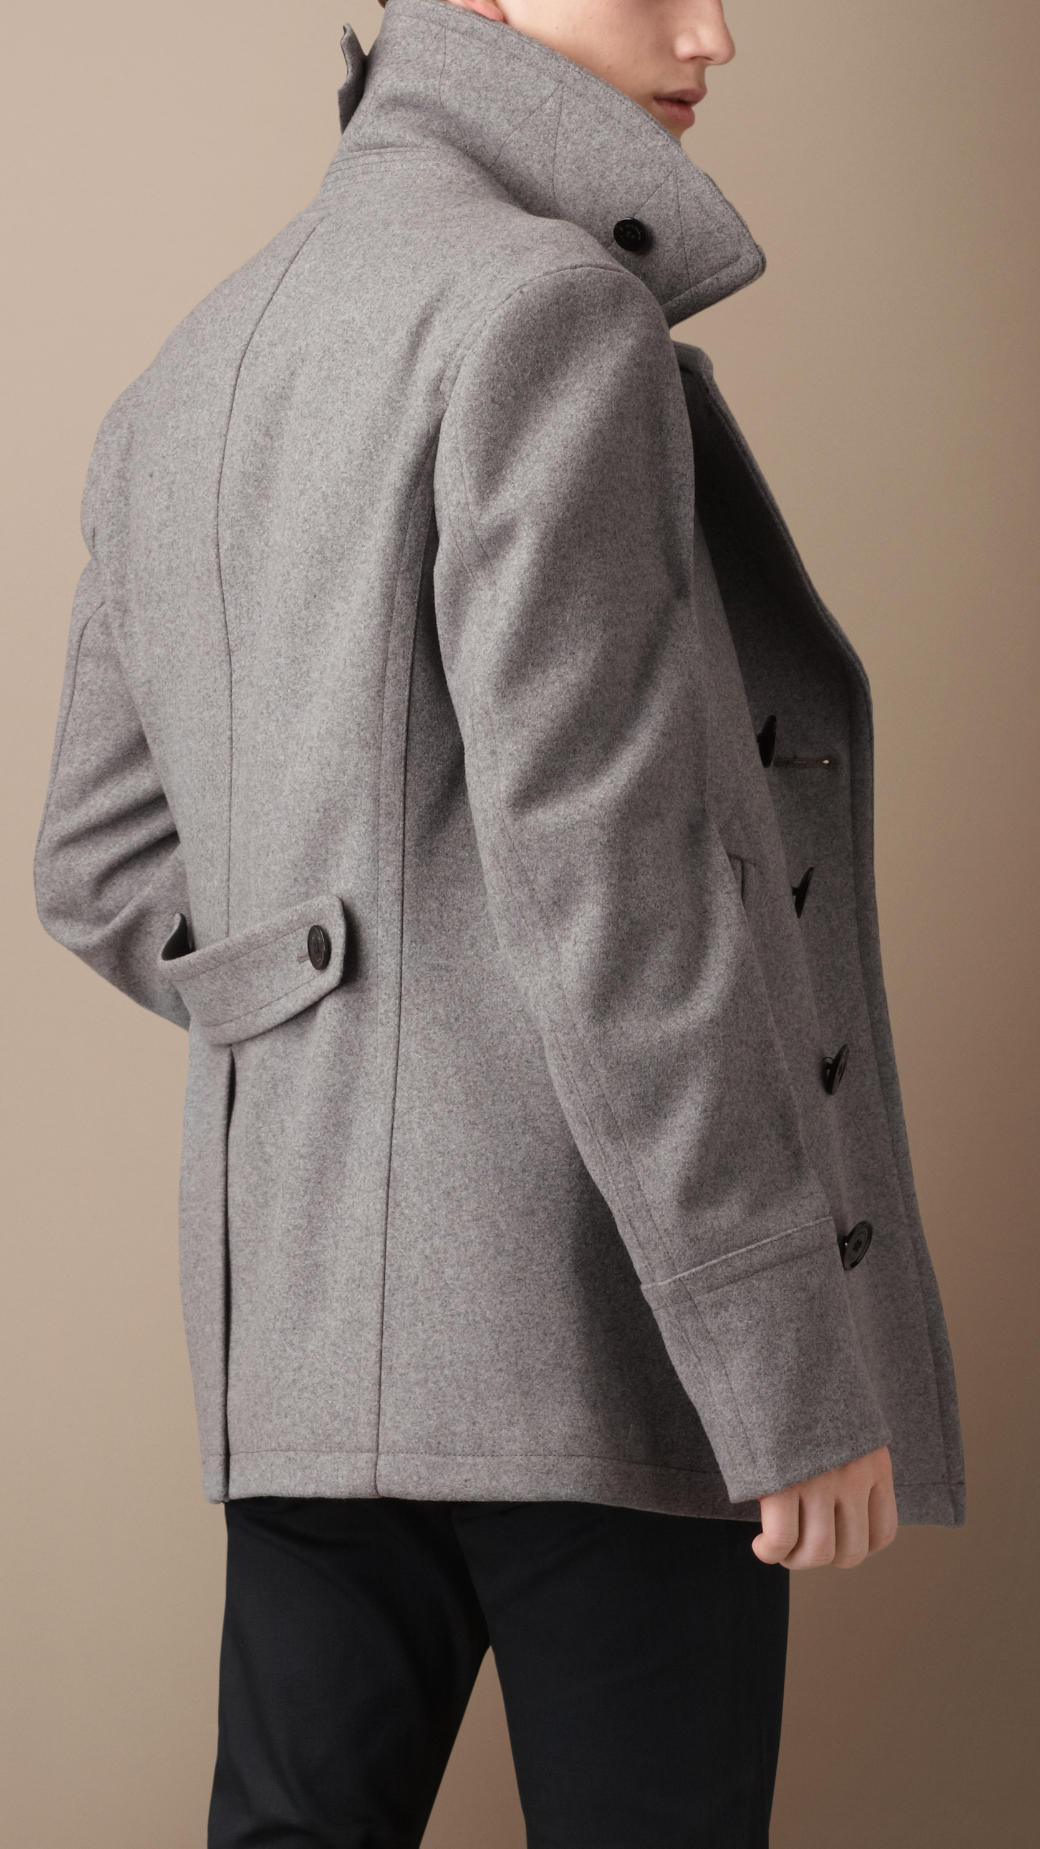 Try a gray wool overcoat from Lauren Ralph Lauren, or a charcoal style by Kenneth Cole finished in notched lapels and a sharp gray herringbone. A sharp heather-hued wool car coat from MICHAEL Michael Kors is a sophisticated way to stay warm in your suit and oxfords.